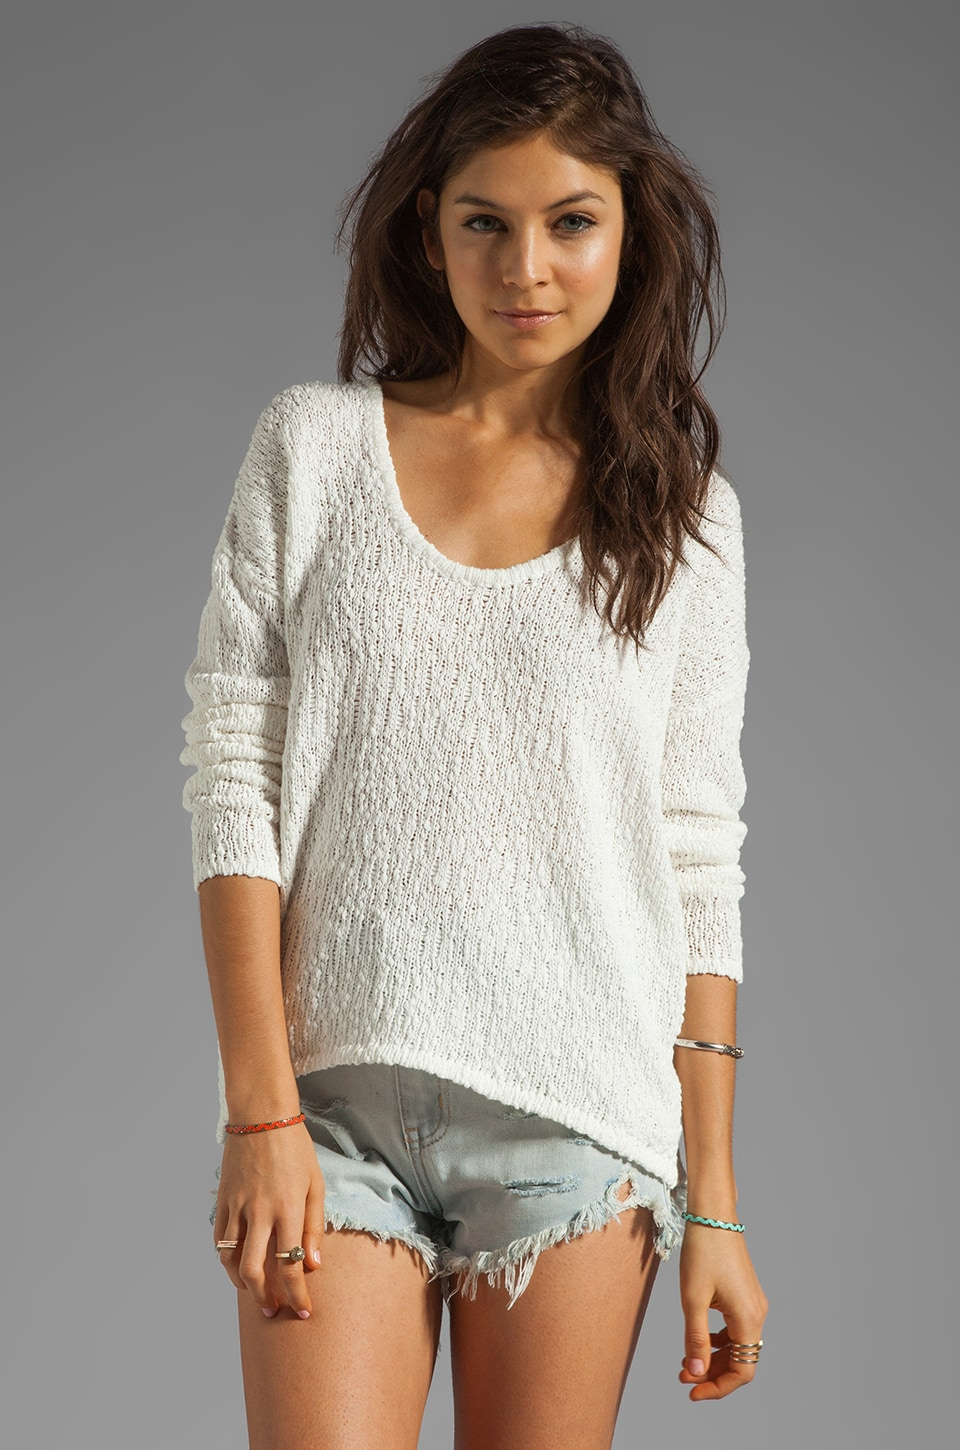 Feel the Piece Long Sleeve Hi Lo Sweater in Optic White